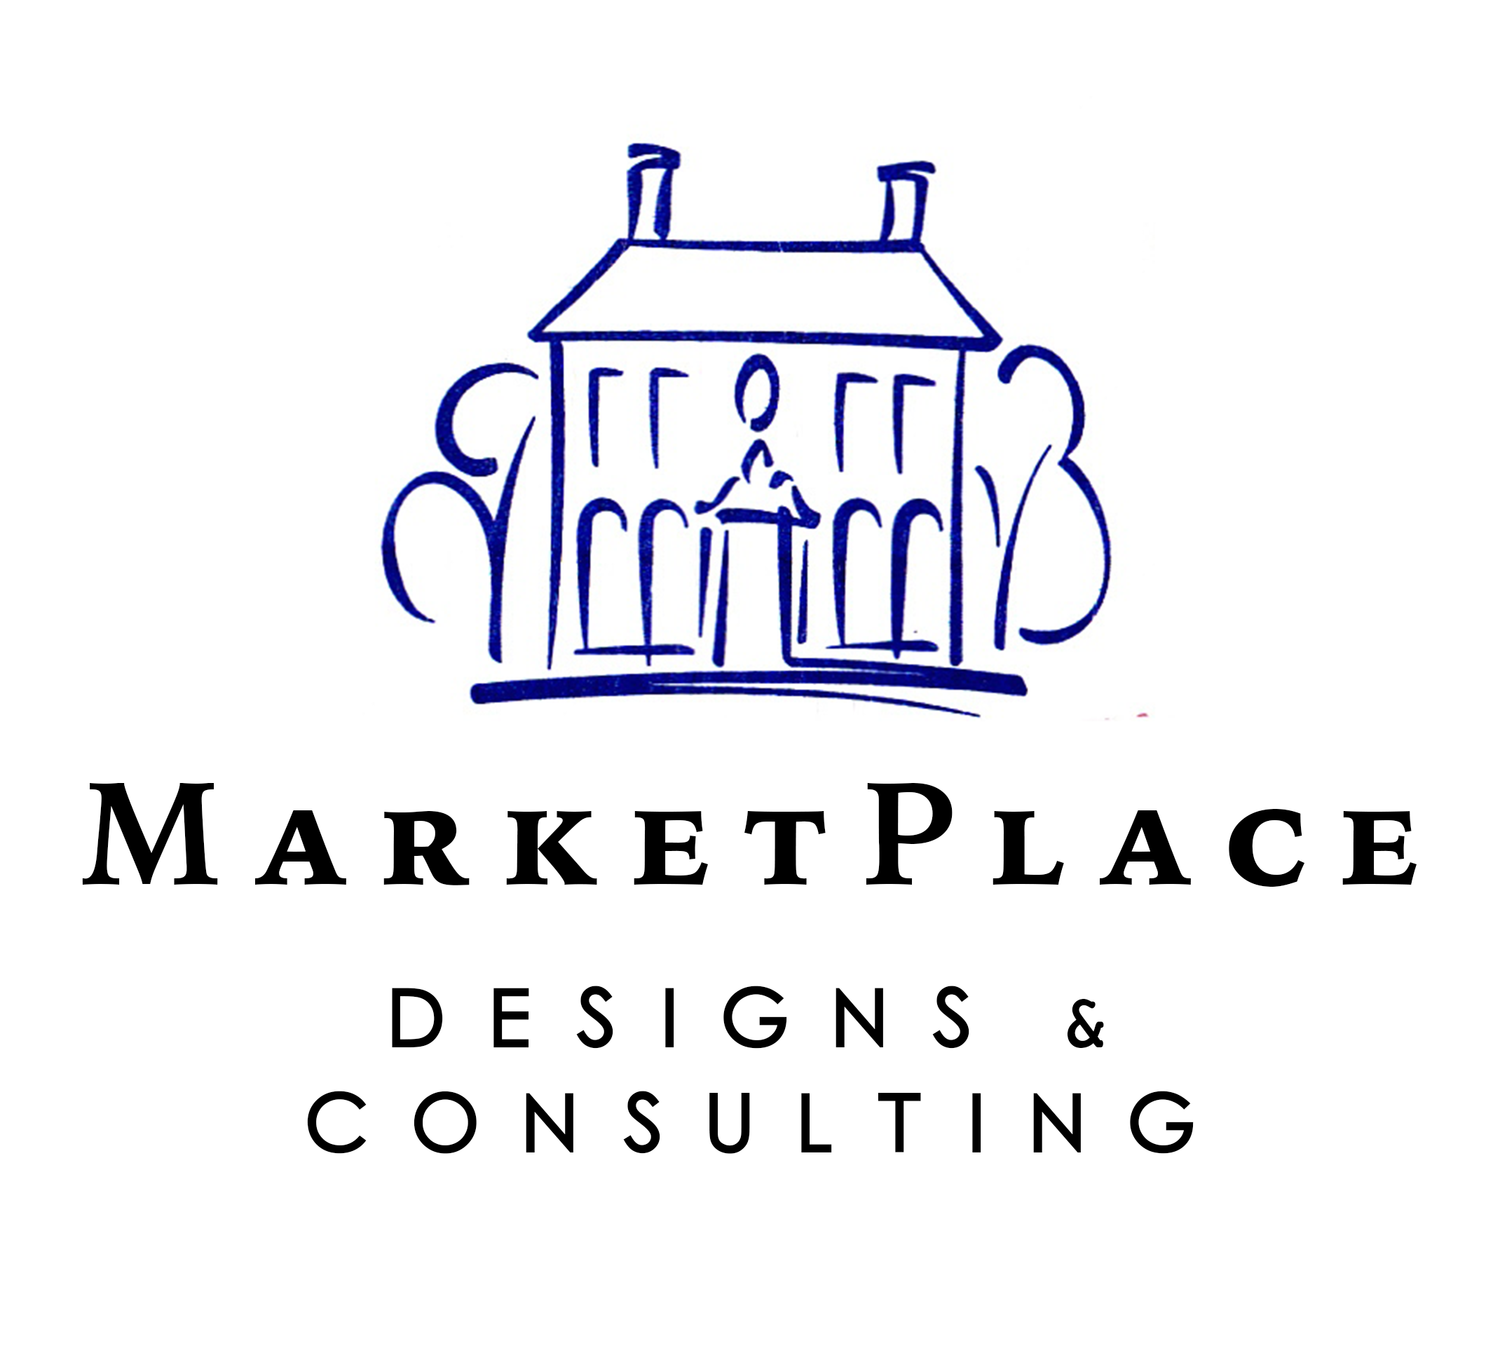 MarketPlace Designs